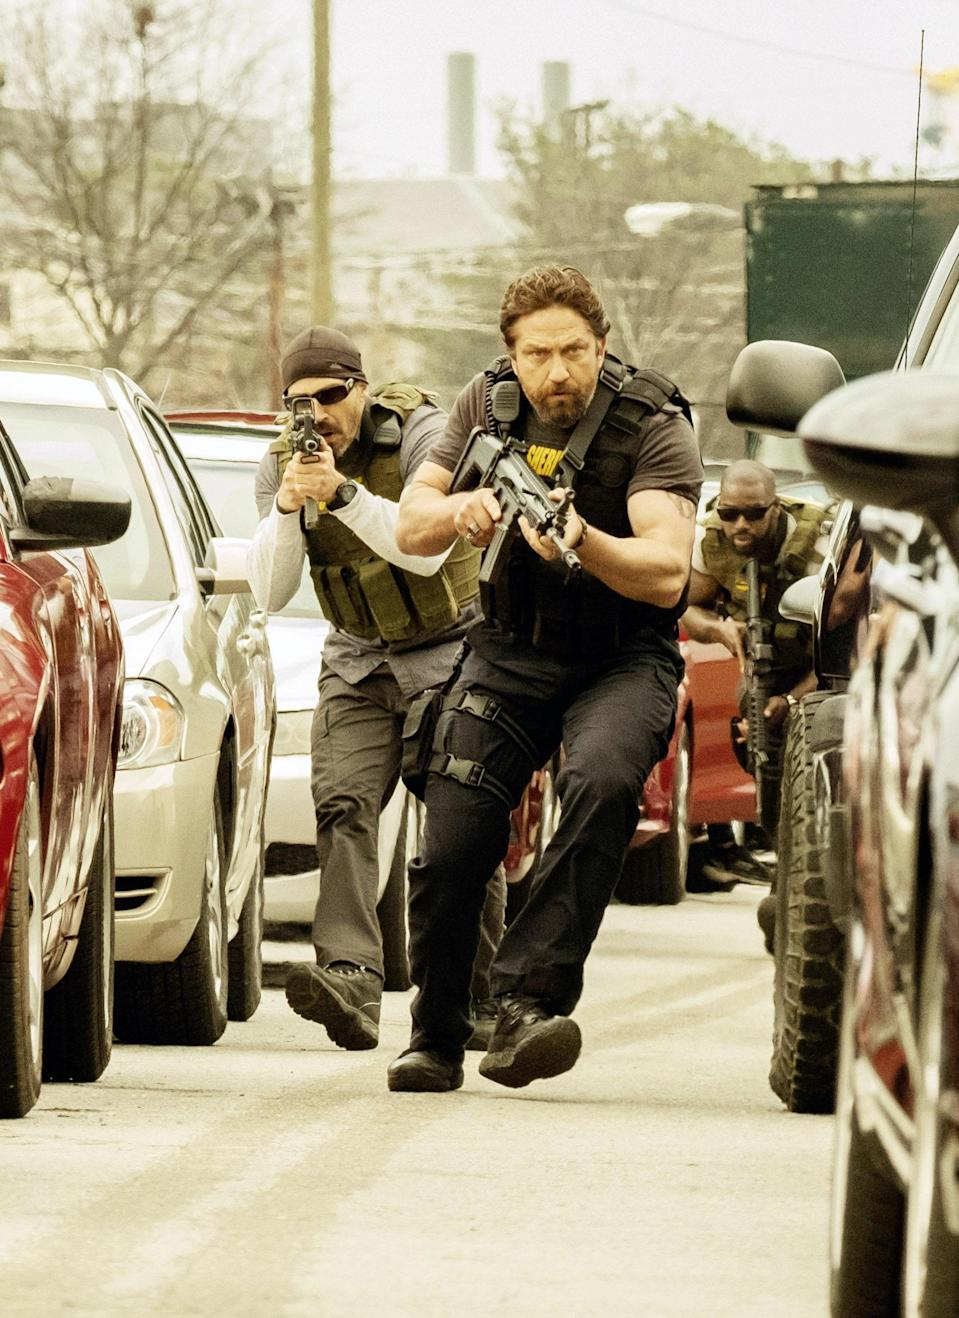 Maurice Compte, Gerard Butler, and Mo McRae in Den of Thieves, 2018.